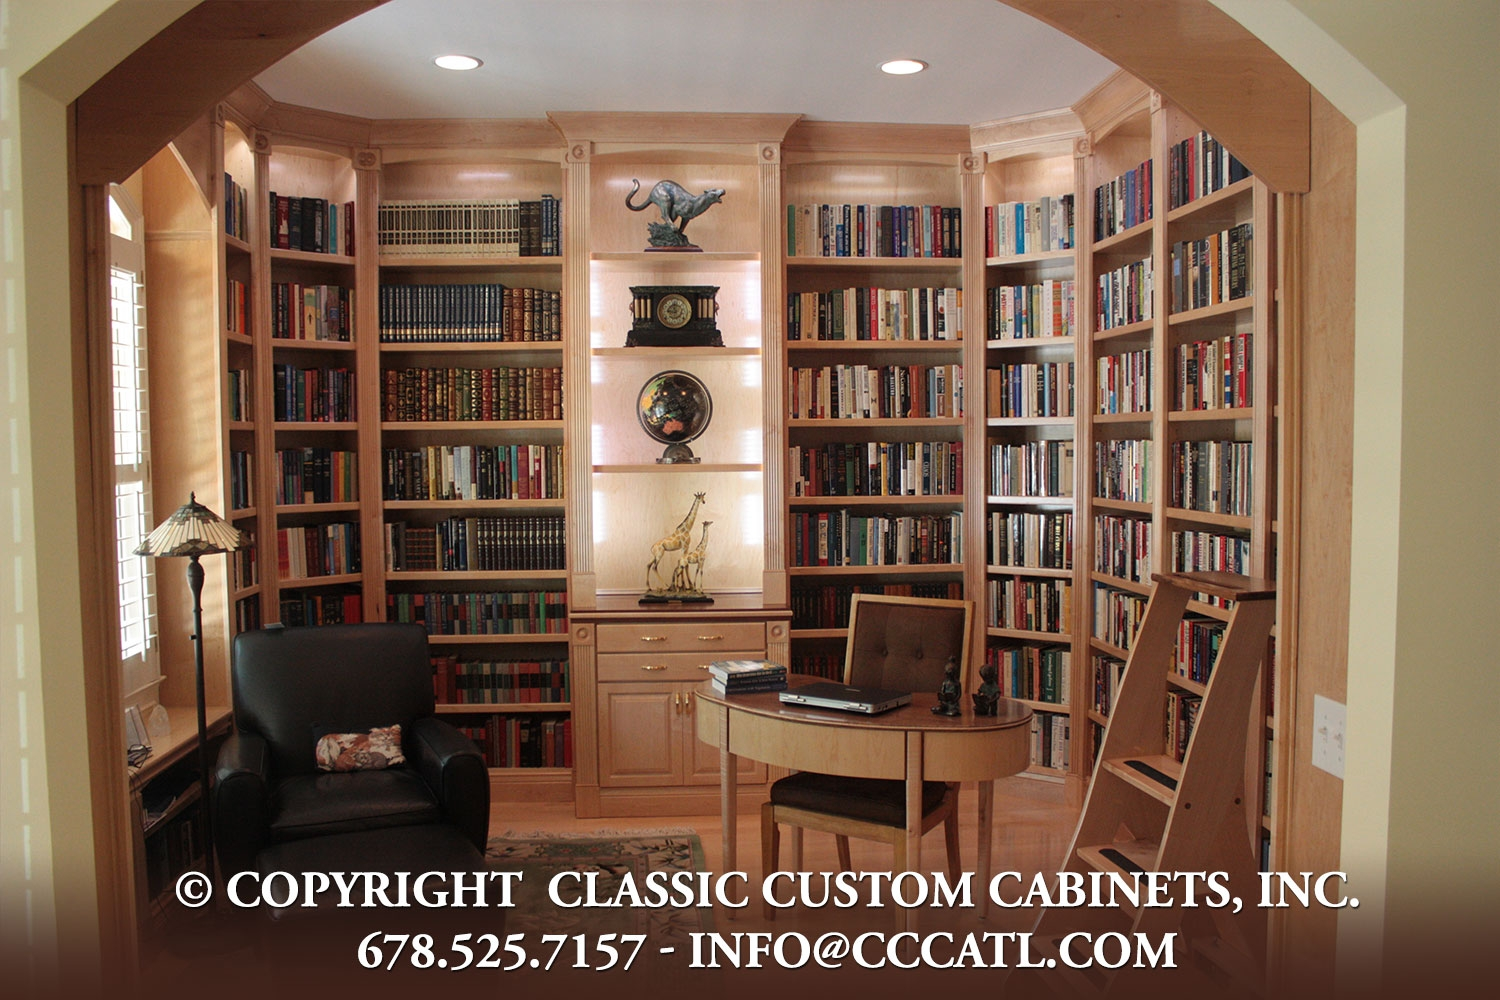 Library Shelving Classic Custom Cabinets Inc Intended For Library Shelves For Home (#13 of 15)